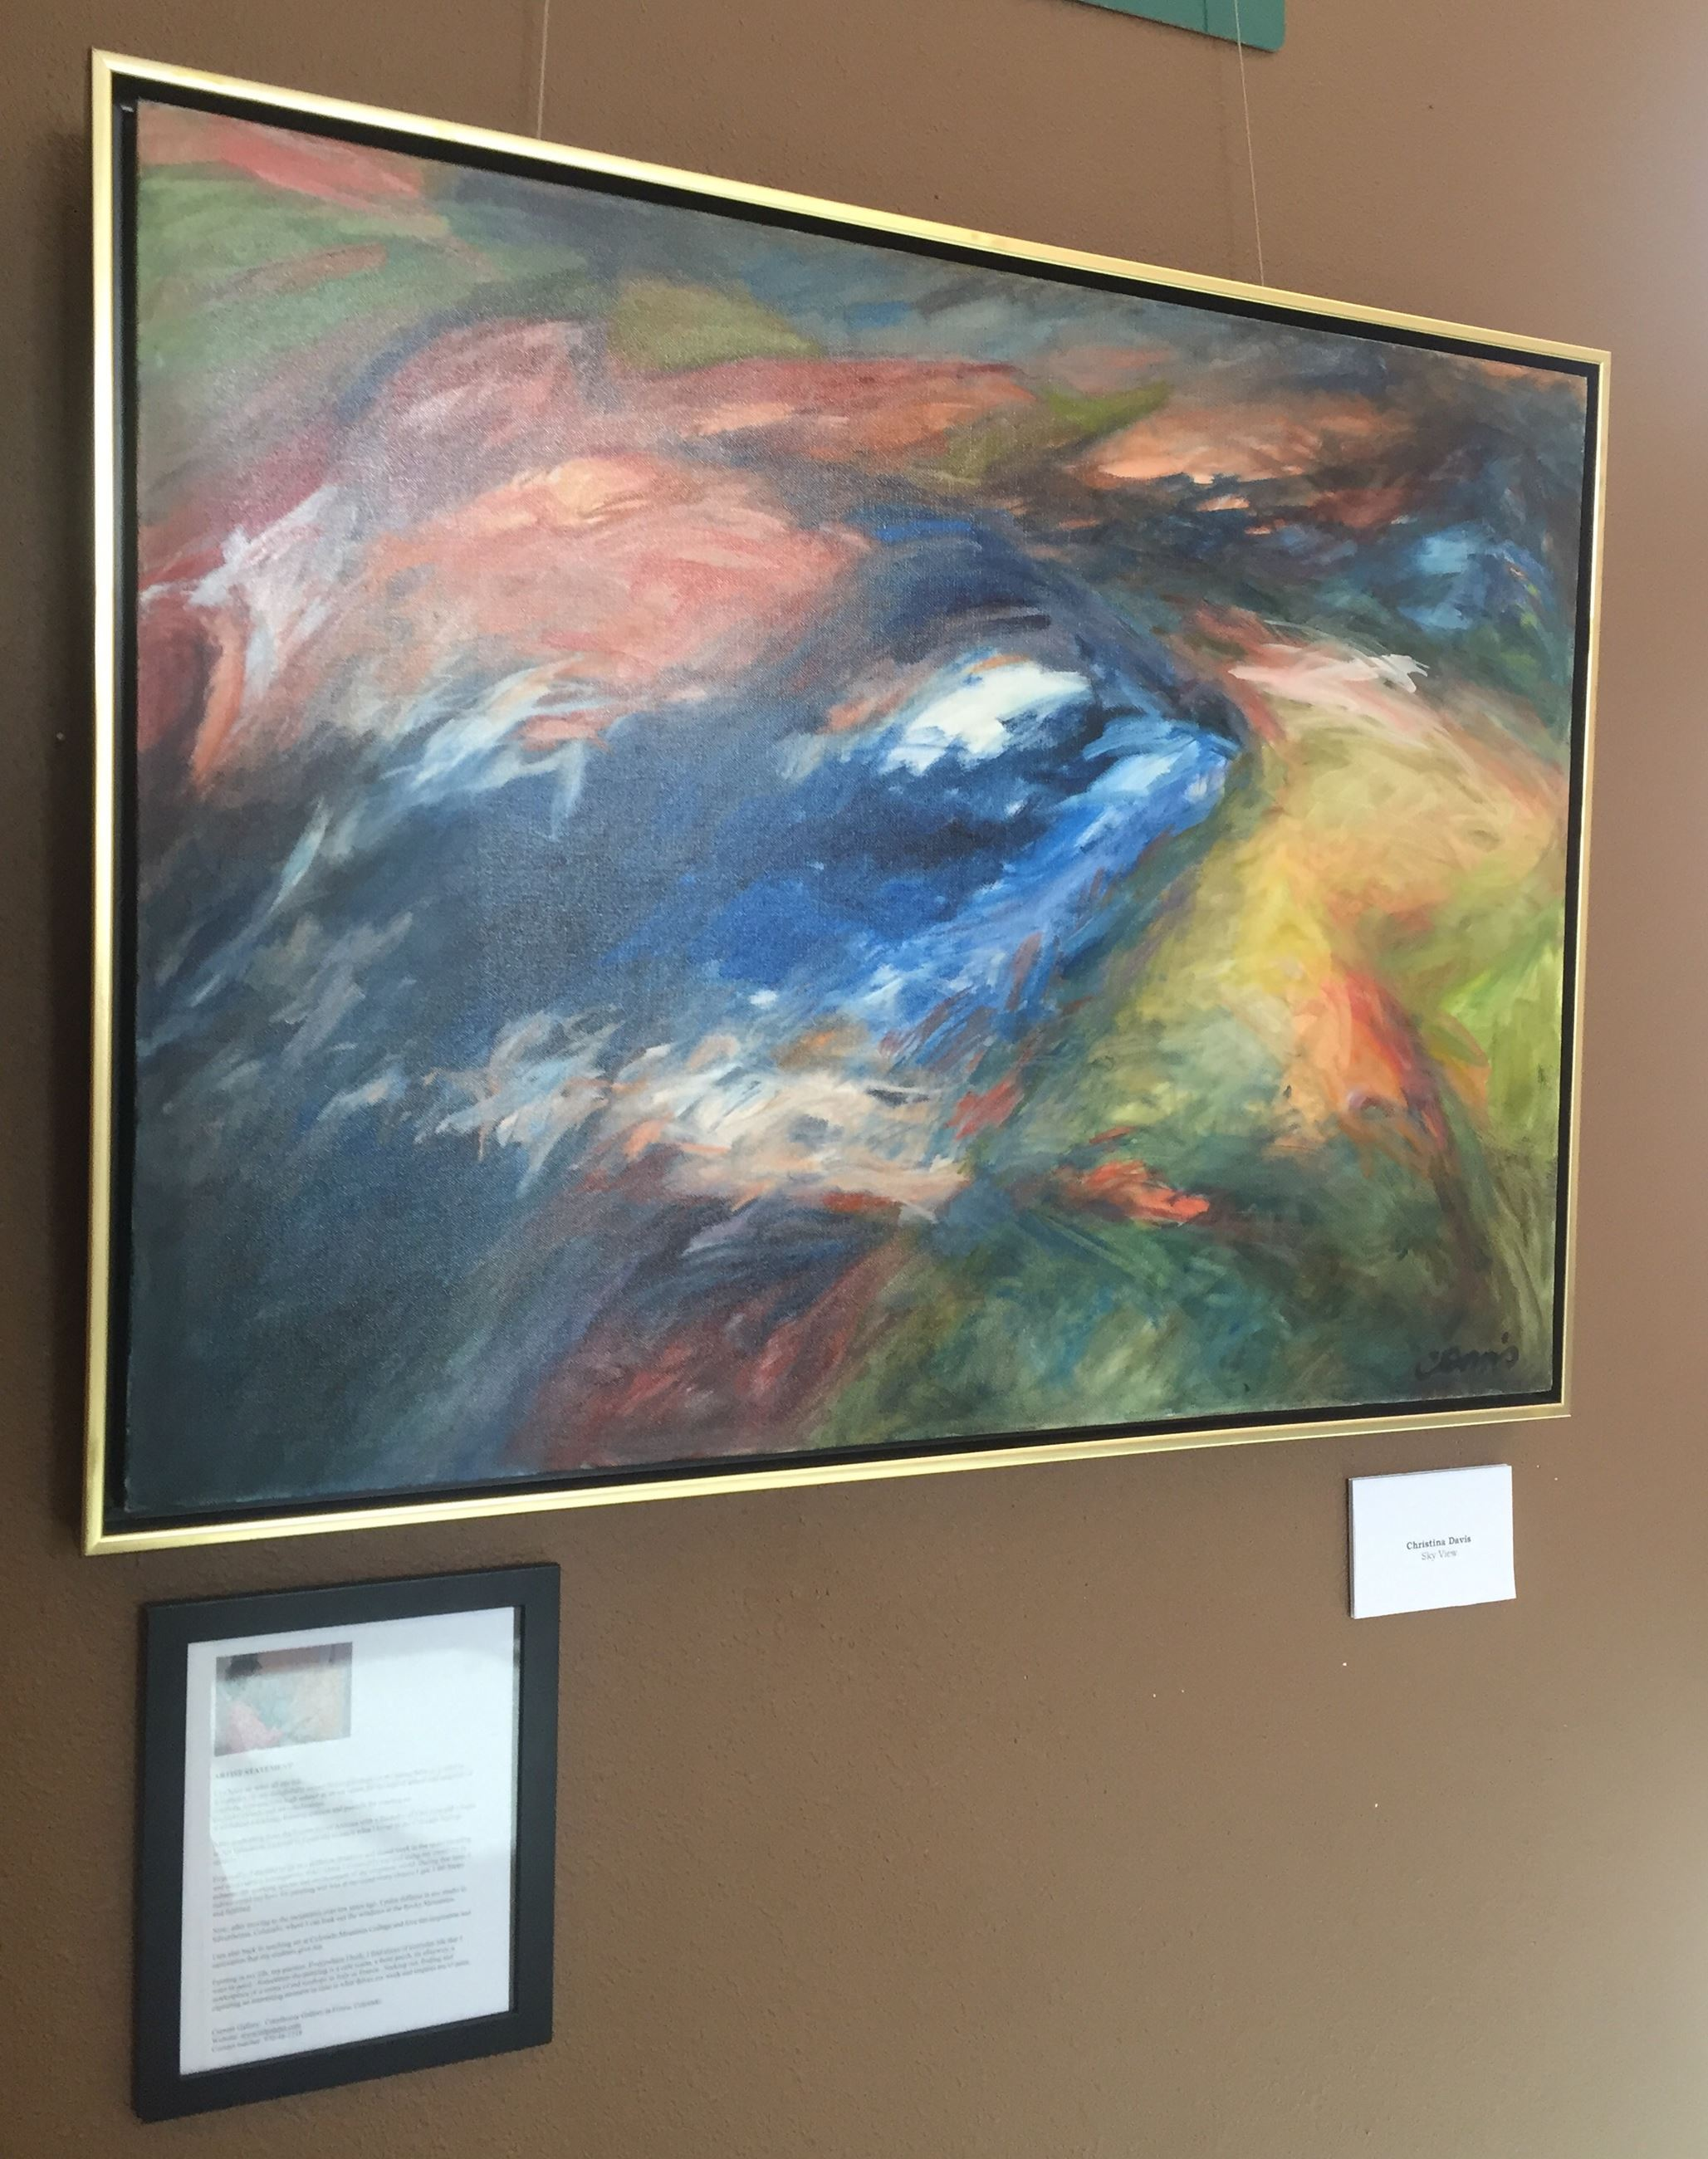 Photo of an abstract painting that includes large swaths of many colors.